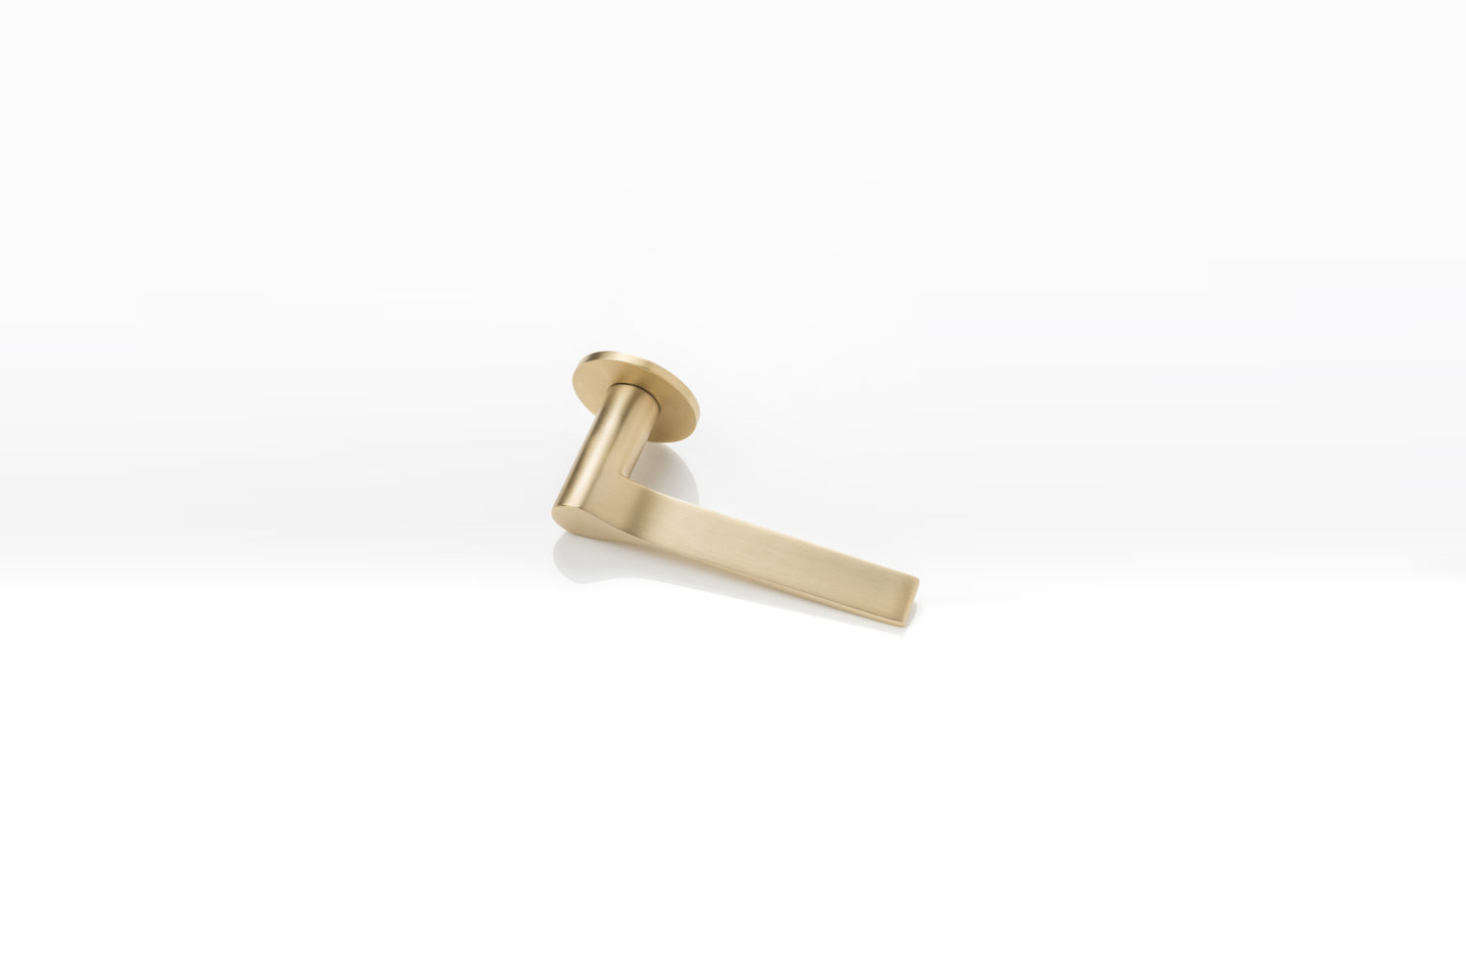 The Joseph Giles LV1045 Fonteyn Solid Brass Lever Handle with a unique rota-bearing sprung rose is available in Brushed Brass Waxed (shown), Polished Wax Brass, and Mid Antique Brass Waxed. Contact Joseph Giles for price and ordering information.